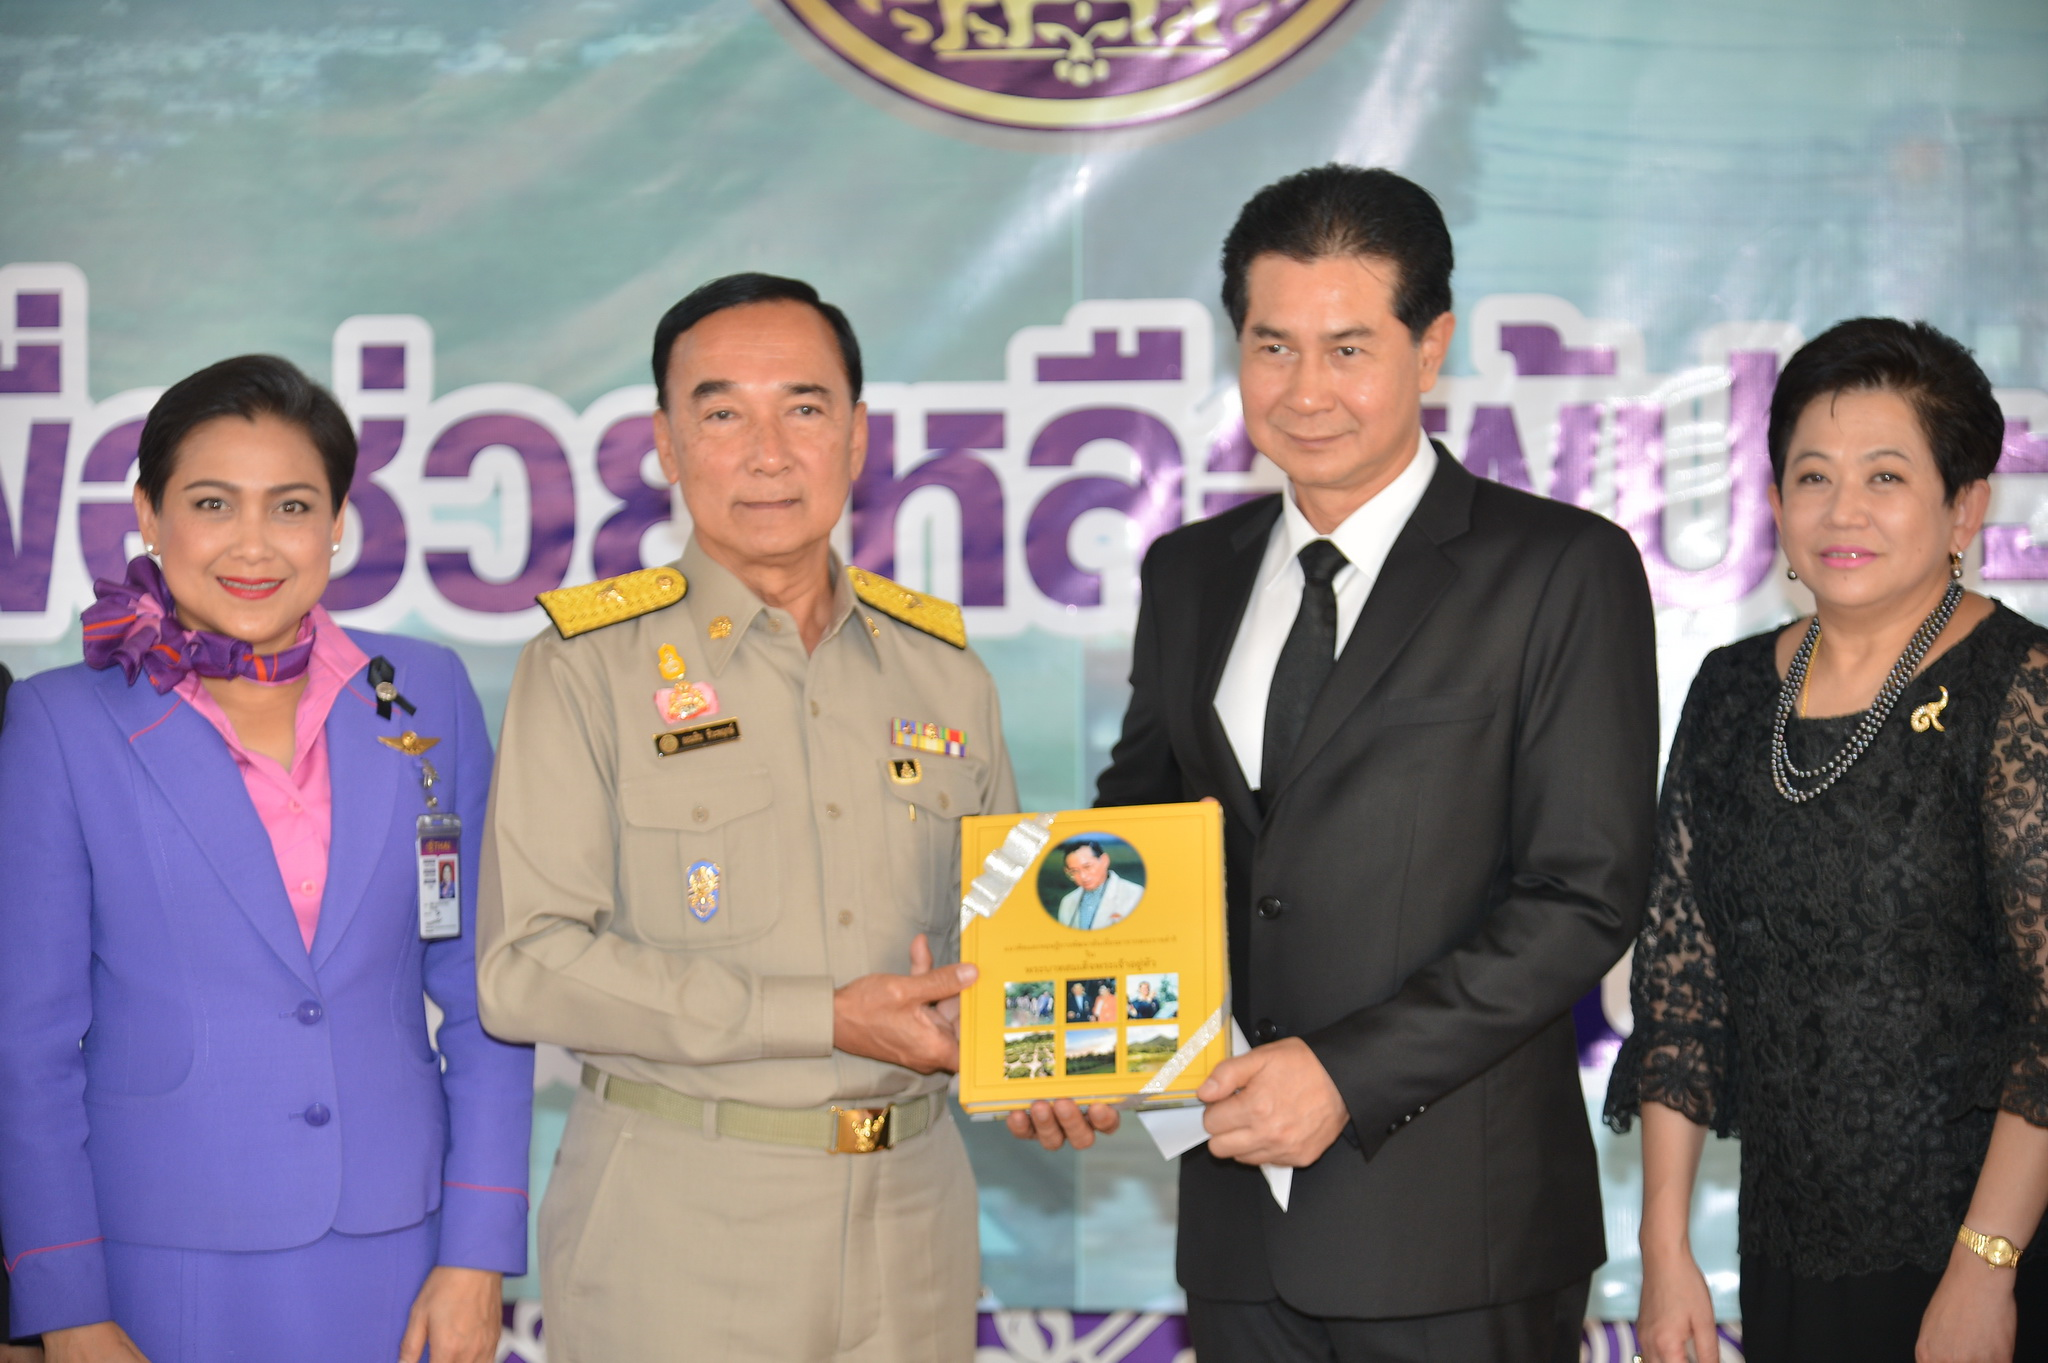 "<a href=""website_en/news/news_detail/WNSOC6002210010035"" target=""_blank"" class=""fontbold font14"" style=""line-height: 1.5em;"">Thai Airways donates money to help flood victims</a>